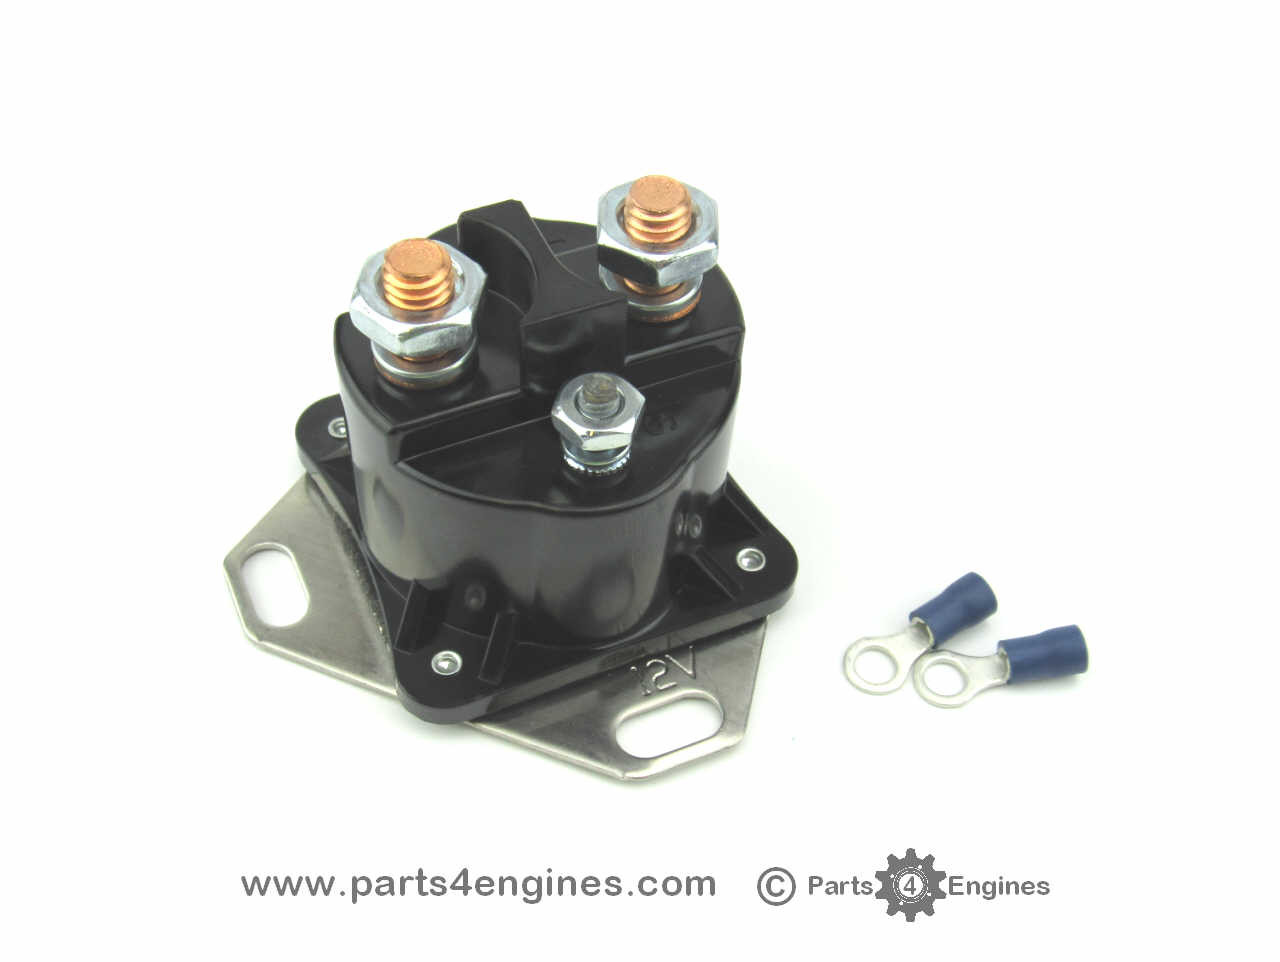 Perkins 4.108 Starter Solenoid 100 Amp on